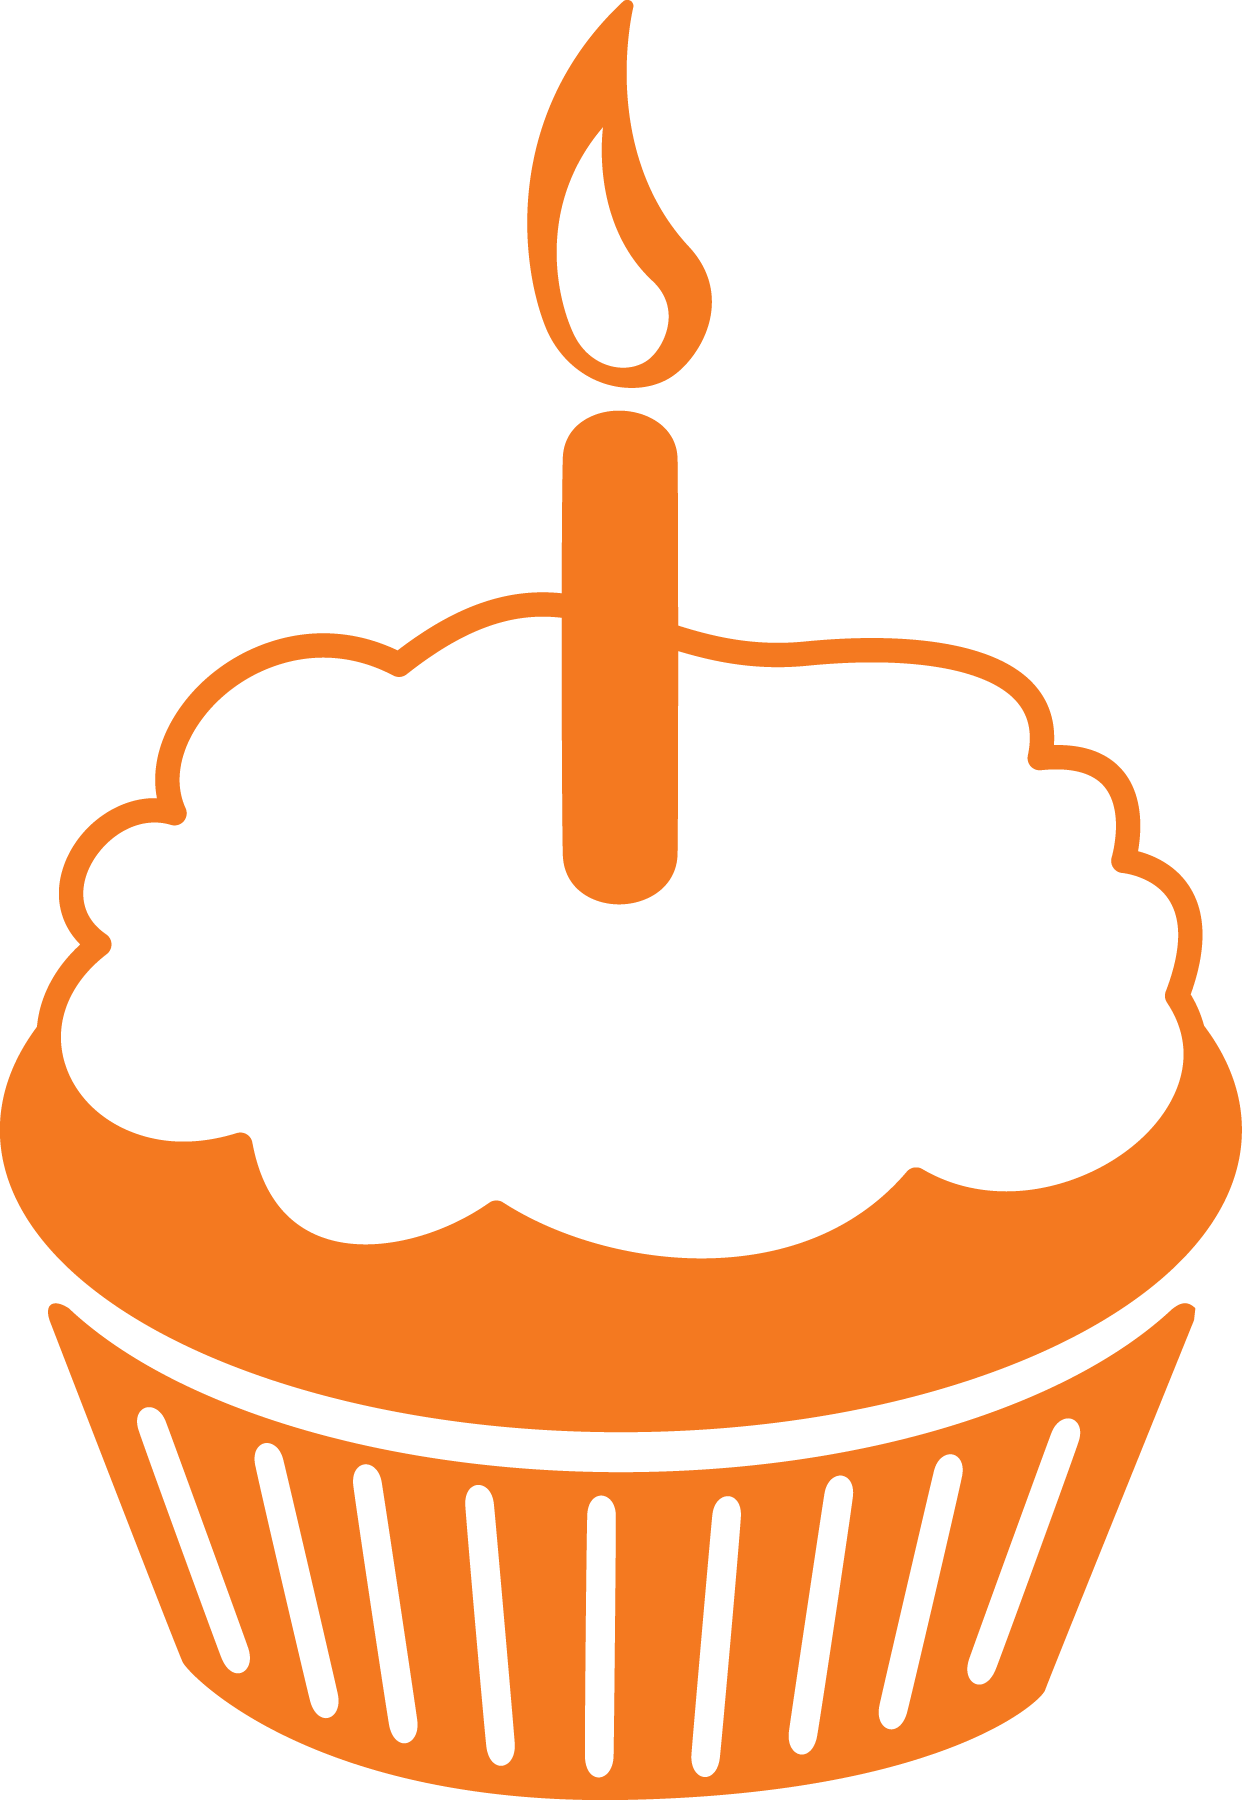 http://www.metroymcas.org/clientuploads/our_impact/birthday_cupcake_orng_rgb_png.png